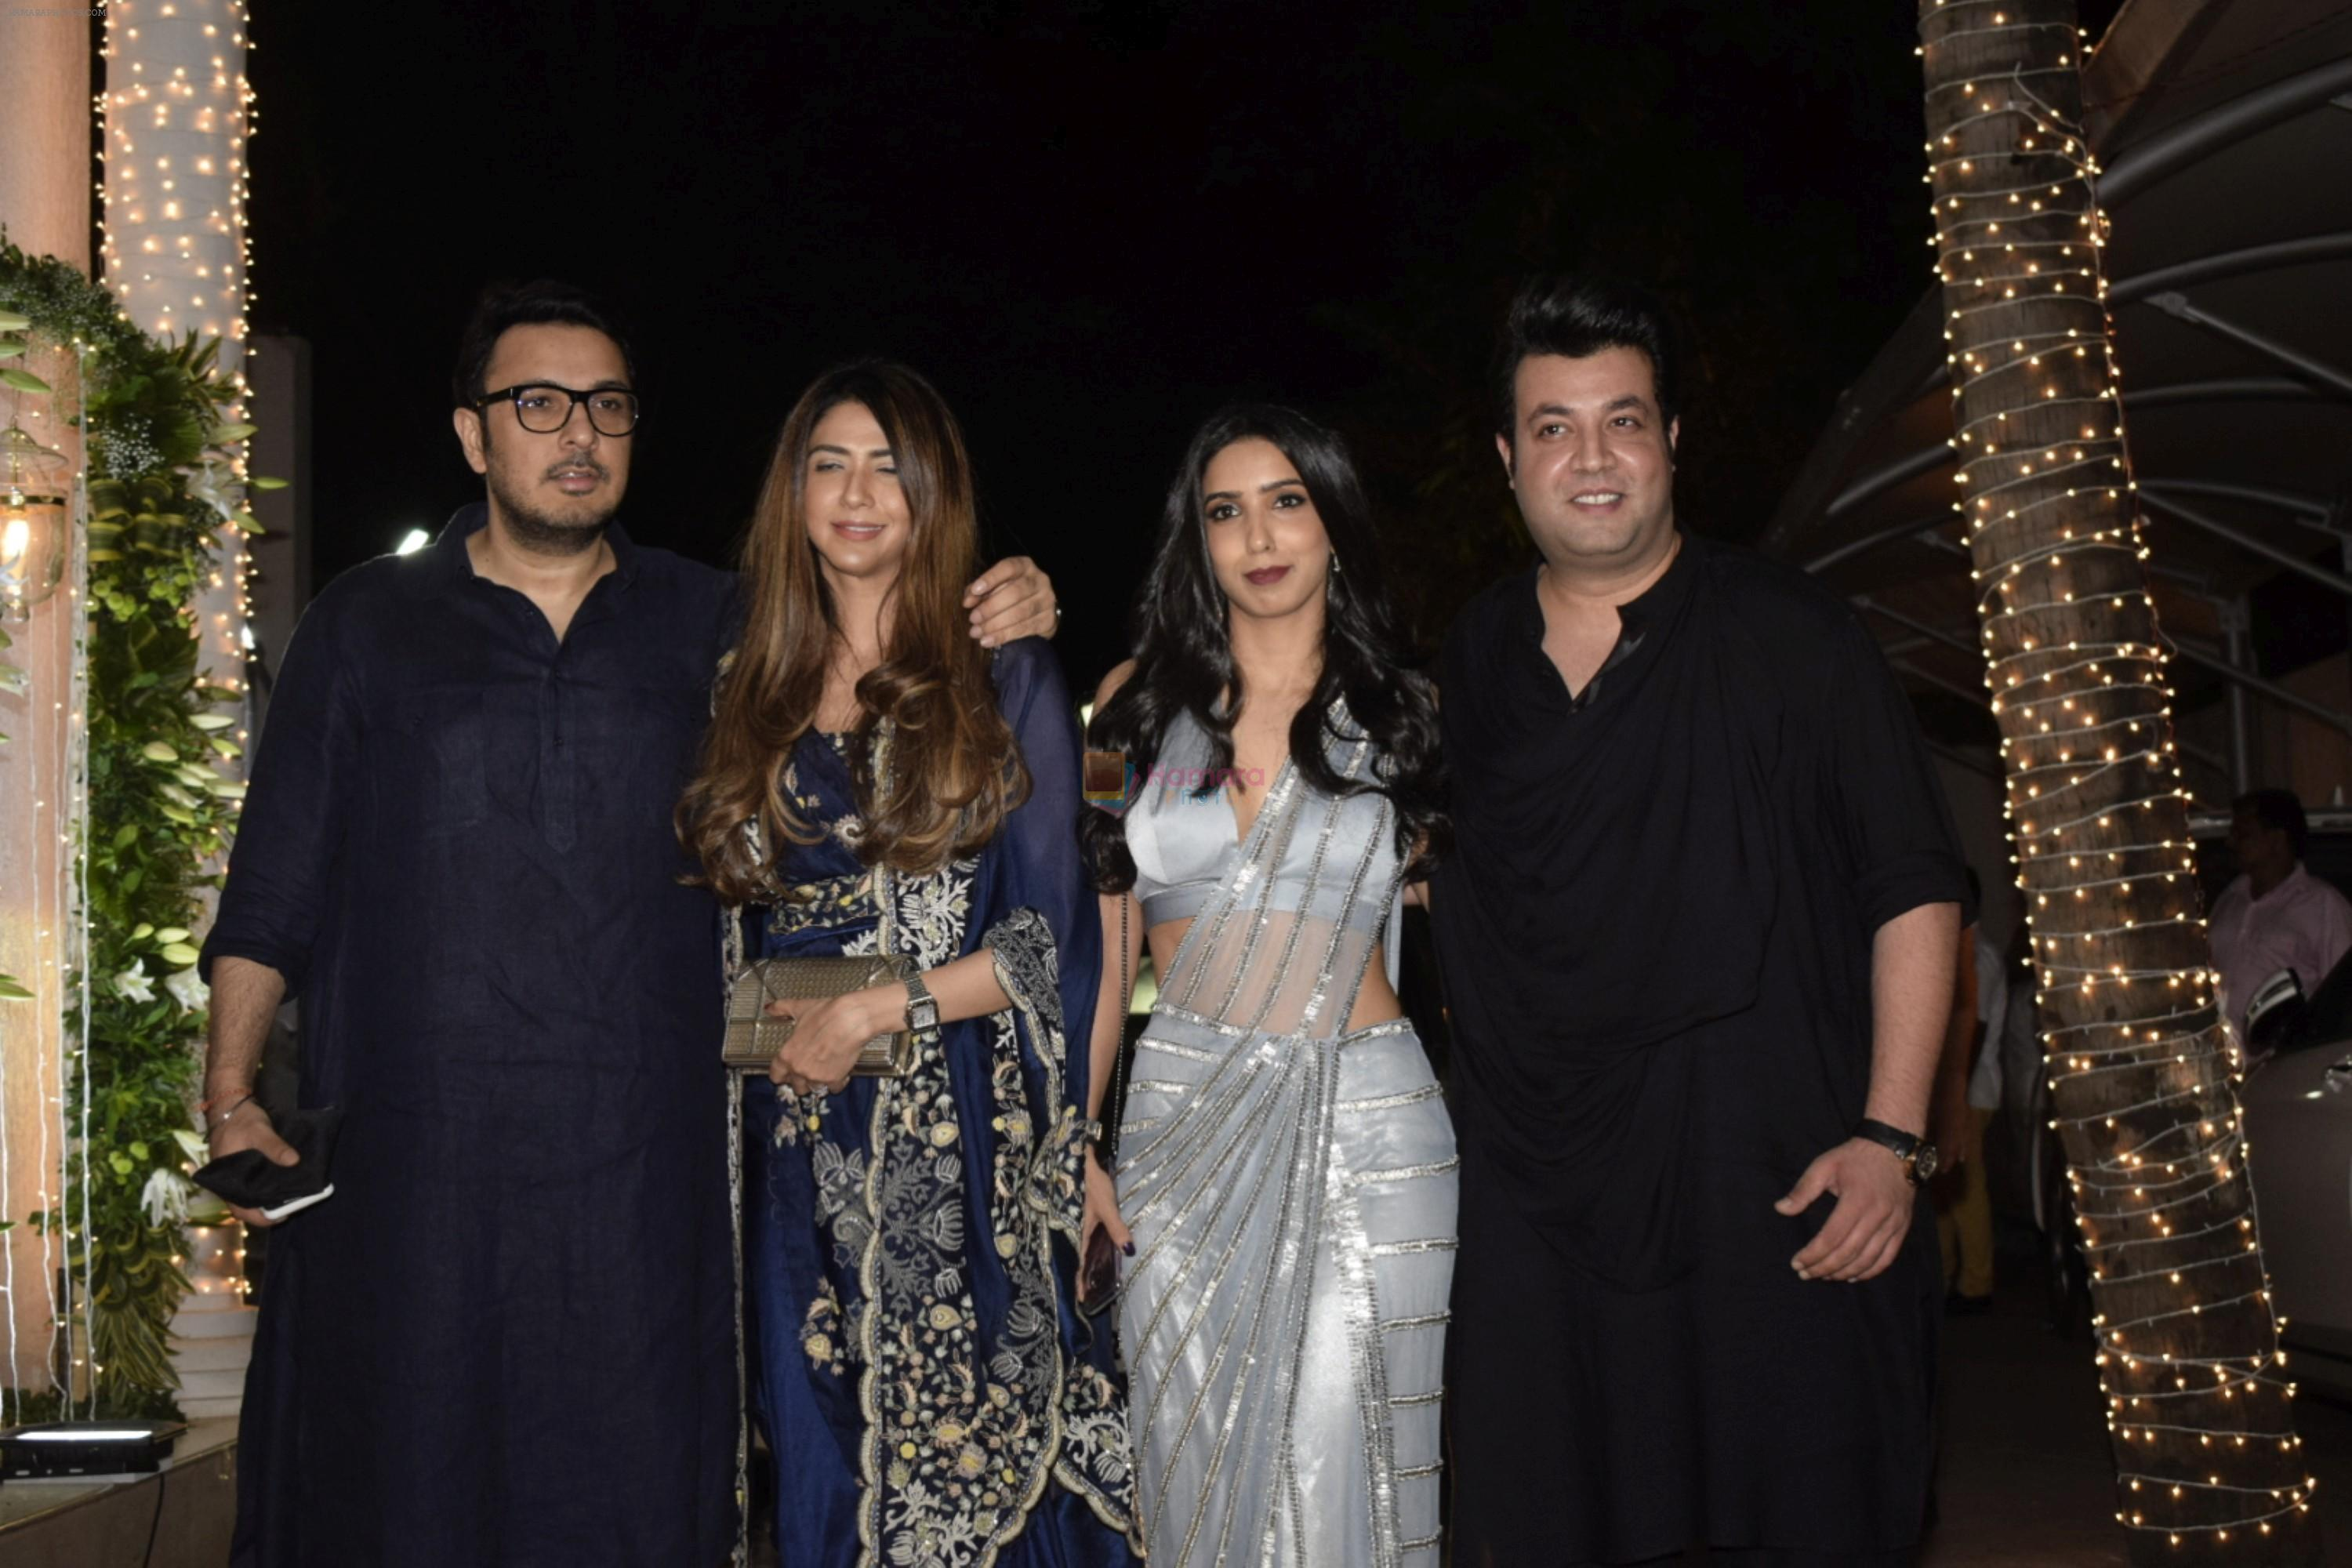 Dinesh Vijan, Varun Sharma at Shilpa Shetty's Diwali party at juhu on 4th Nov 2018